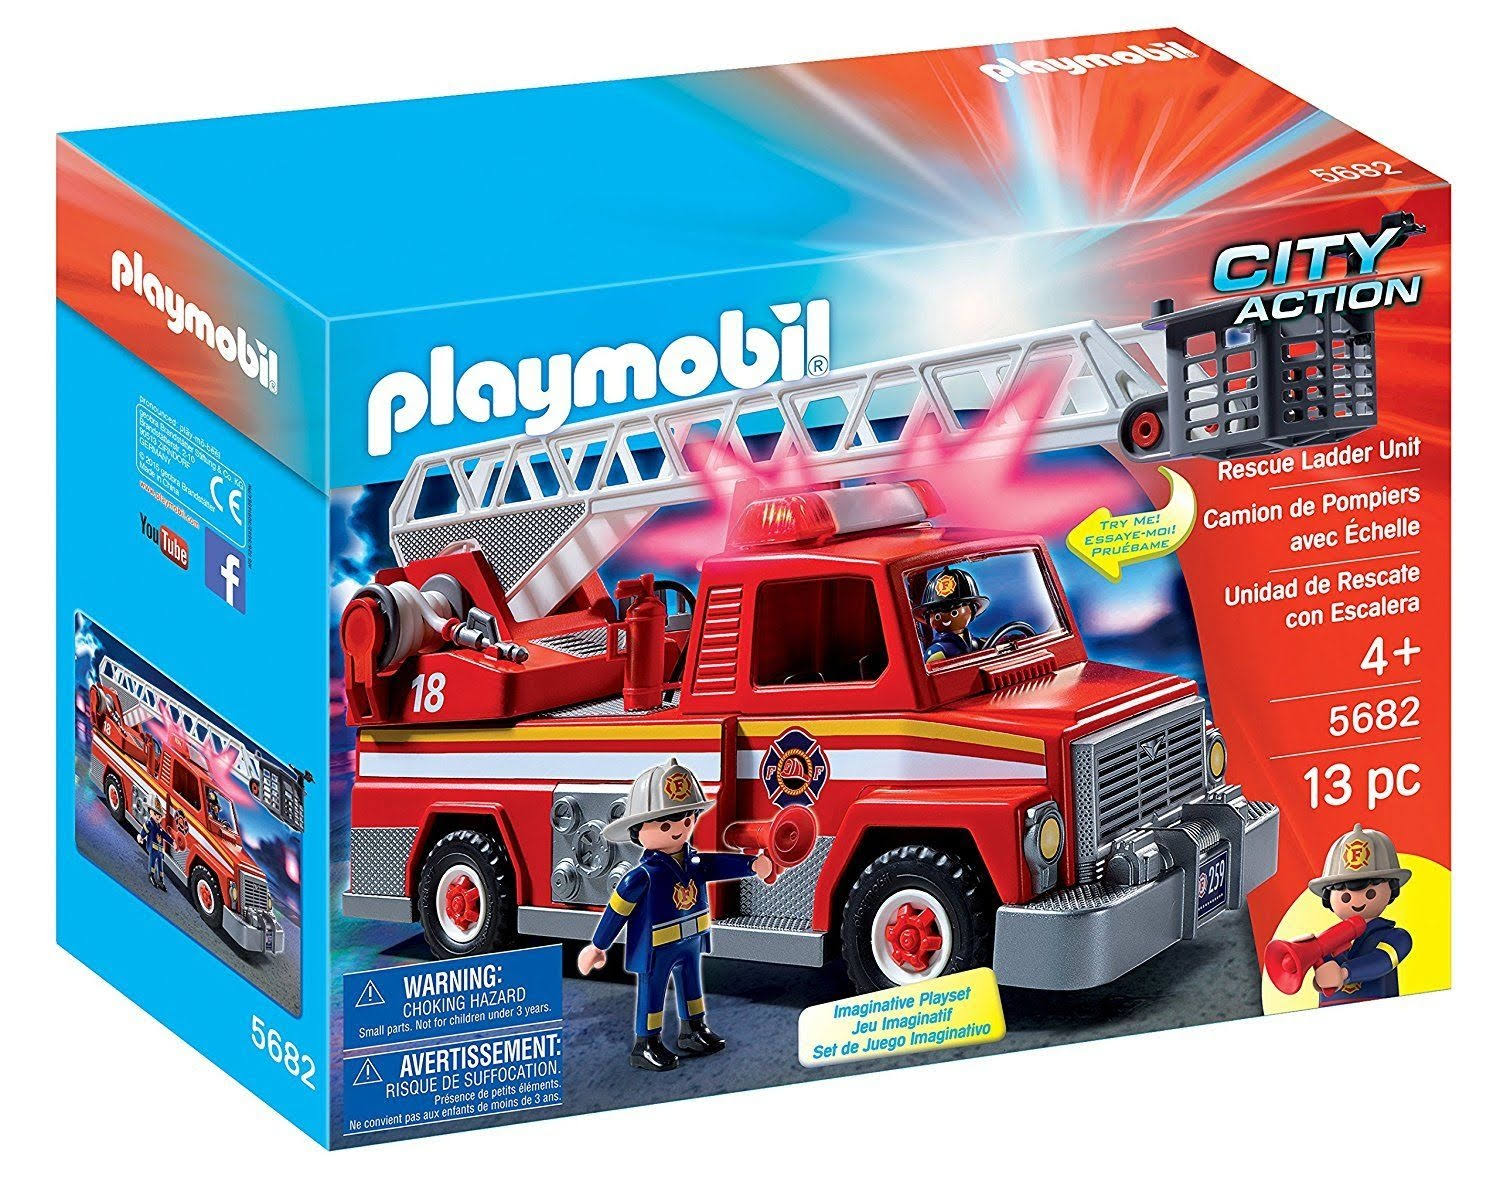 Playmobil 5682 City Action Rescue Ladder Unit